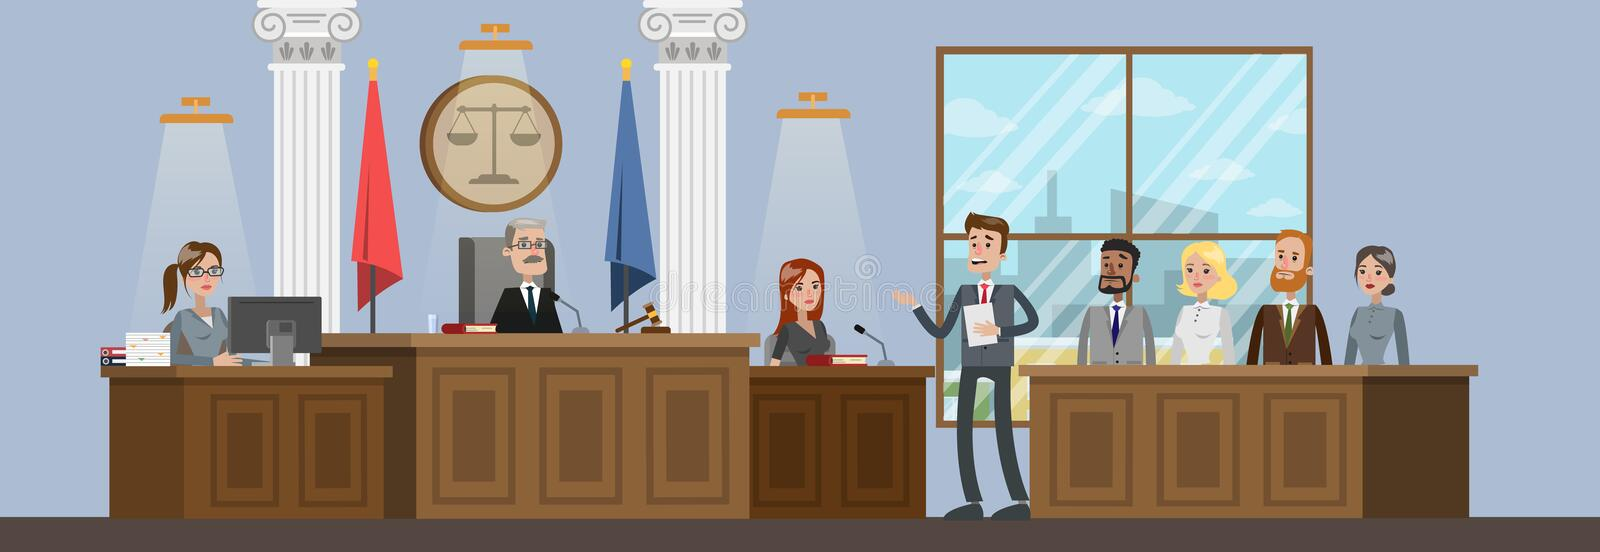 Court building interior with courtroom. Trial process. Lawyer or attorney giving a speech to a judge. Vector flat illustration vector illustration